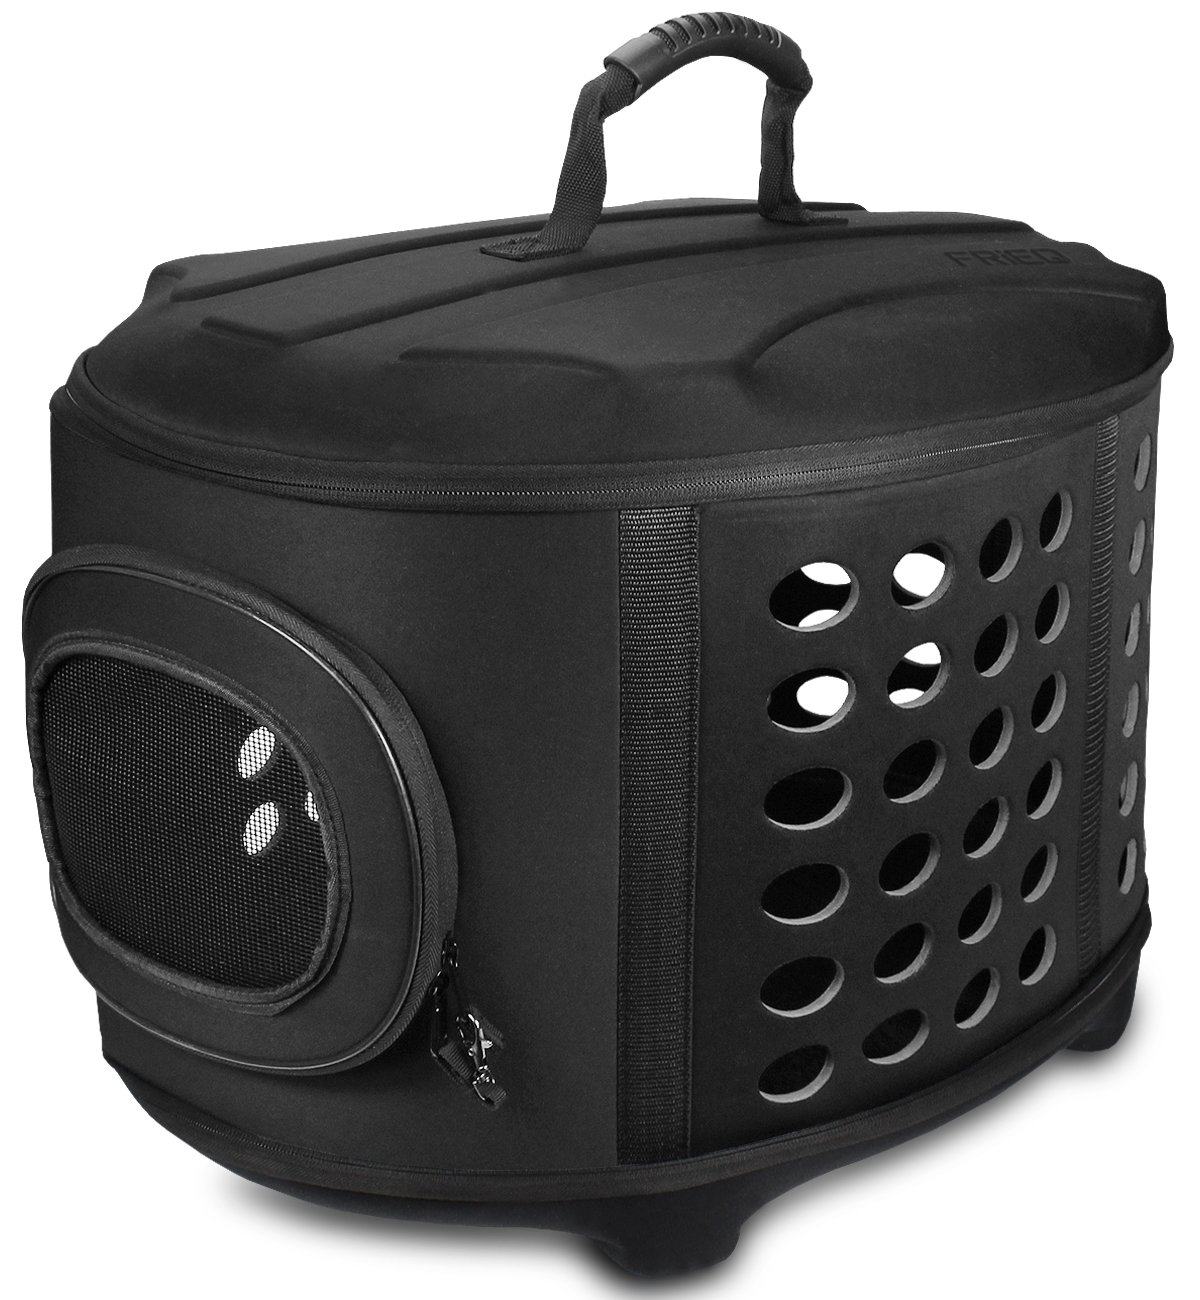 FRiEQ 23-Inch Large Hard Cover Pet Carrier - Pet Travel Kennel for Cats, Small Dogs & Rabbits by FRiEQ